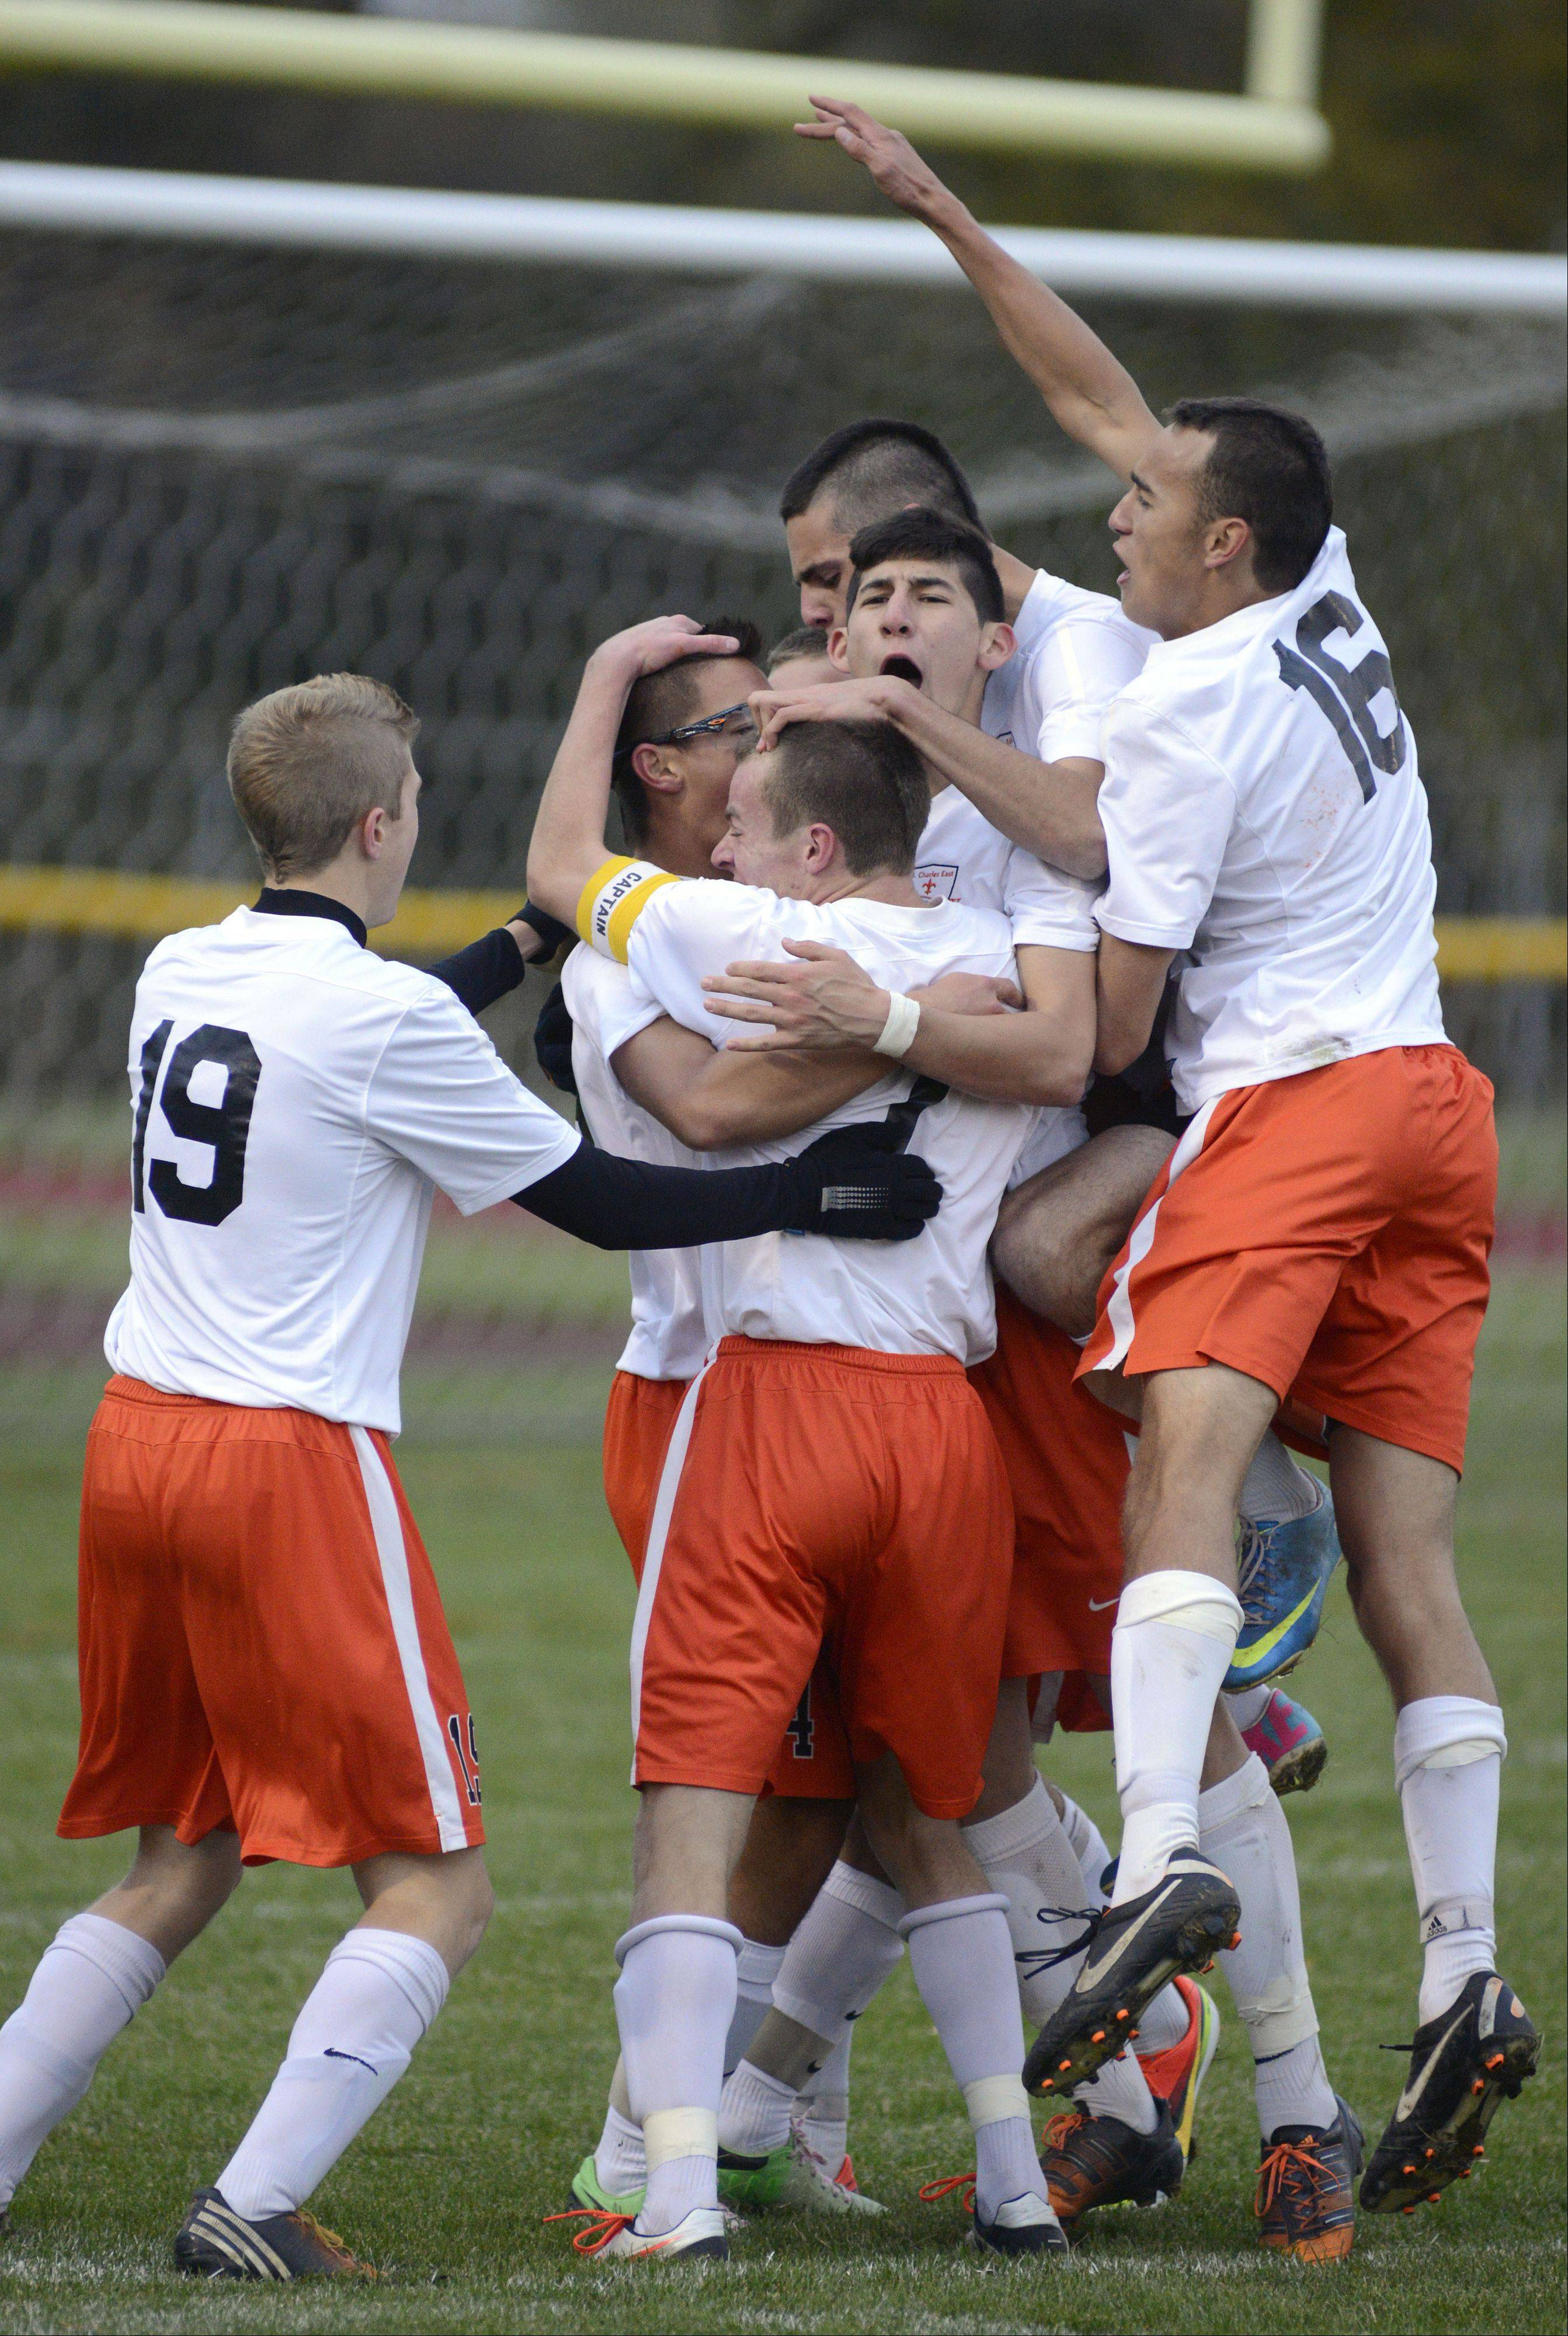 St. Charles East�s Zach Manibog (center, with glasses) is swarmed by teammates after scoring the first goal for the Saints in the second half on Wednesday, October 23.